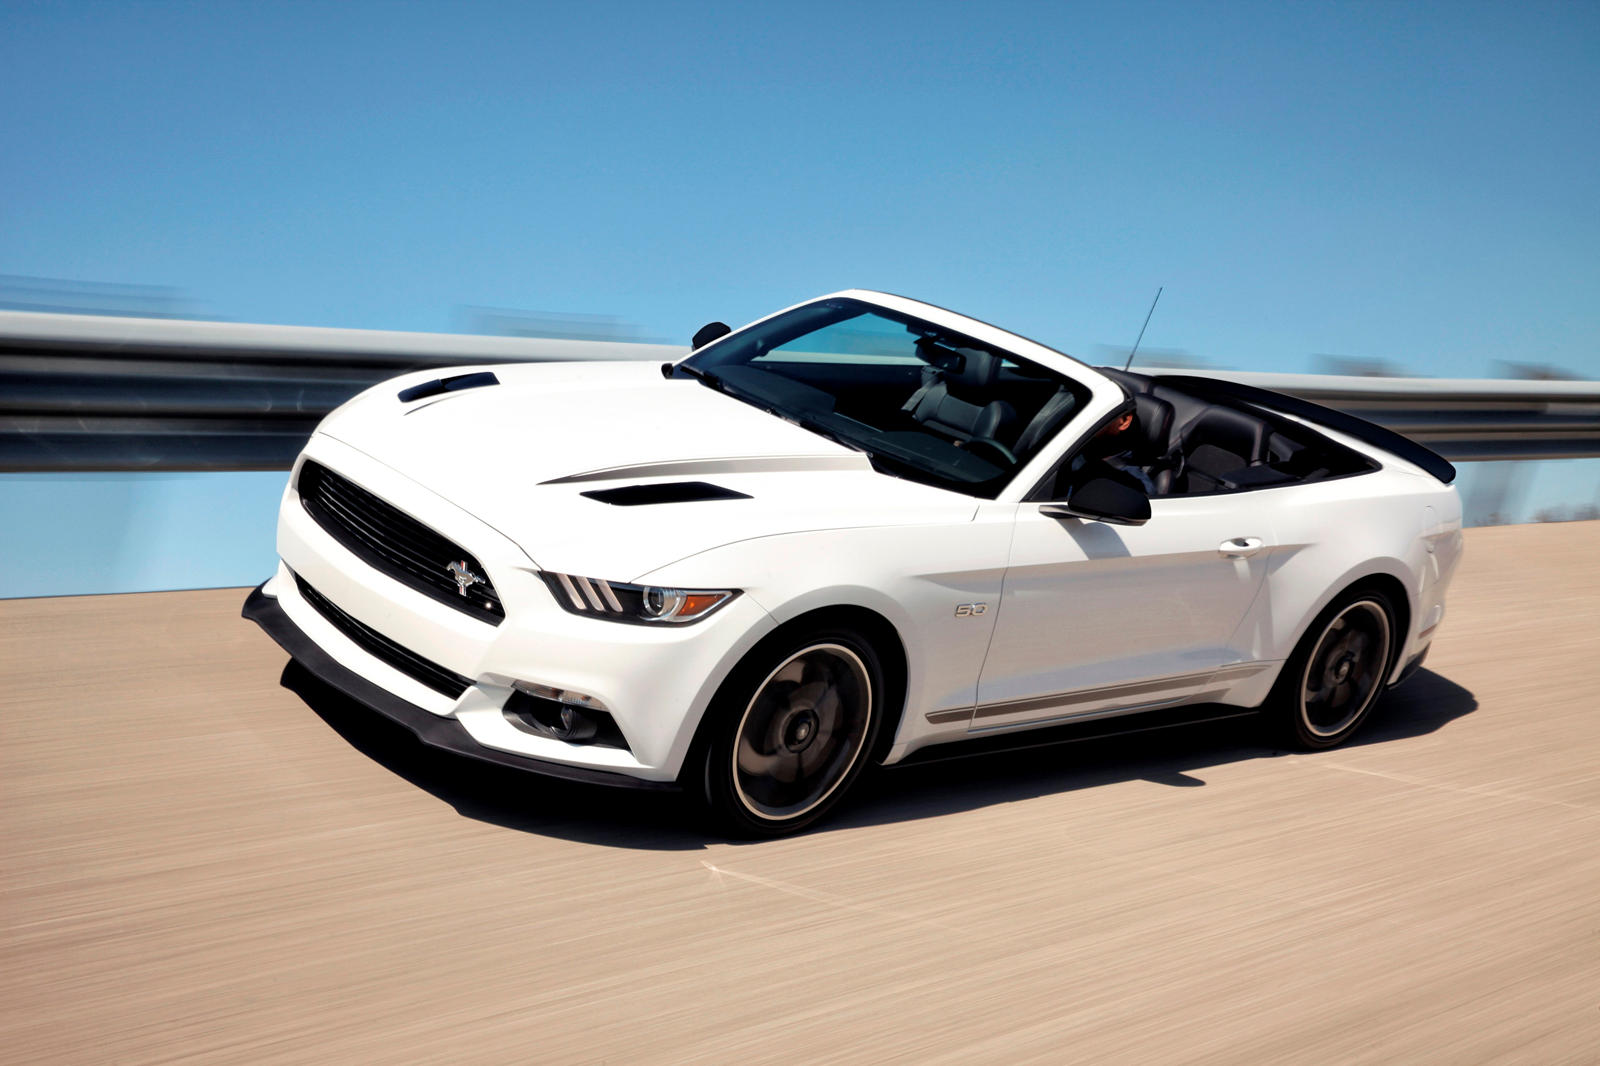 2016 Mustang Gt Average Price